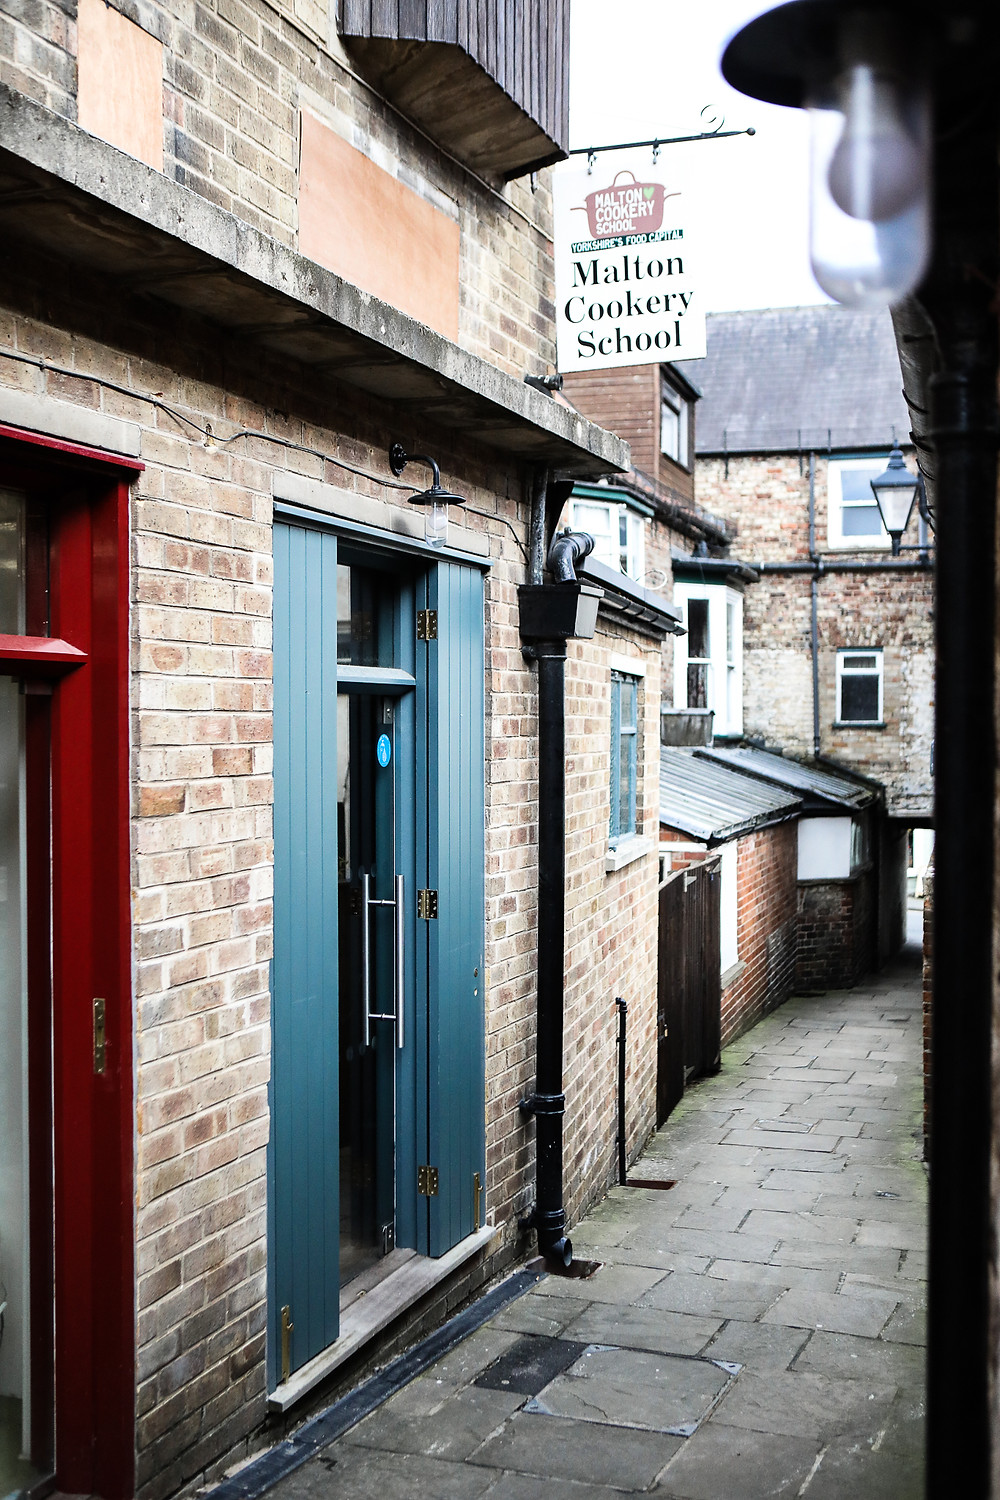 Entrance to the cookery school.